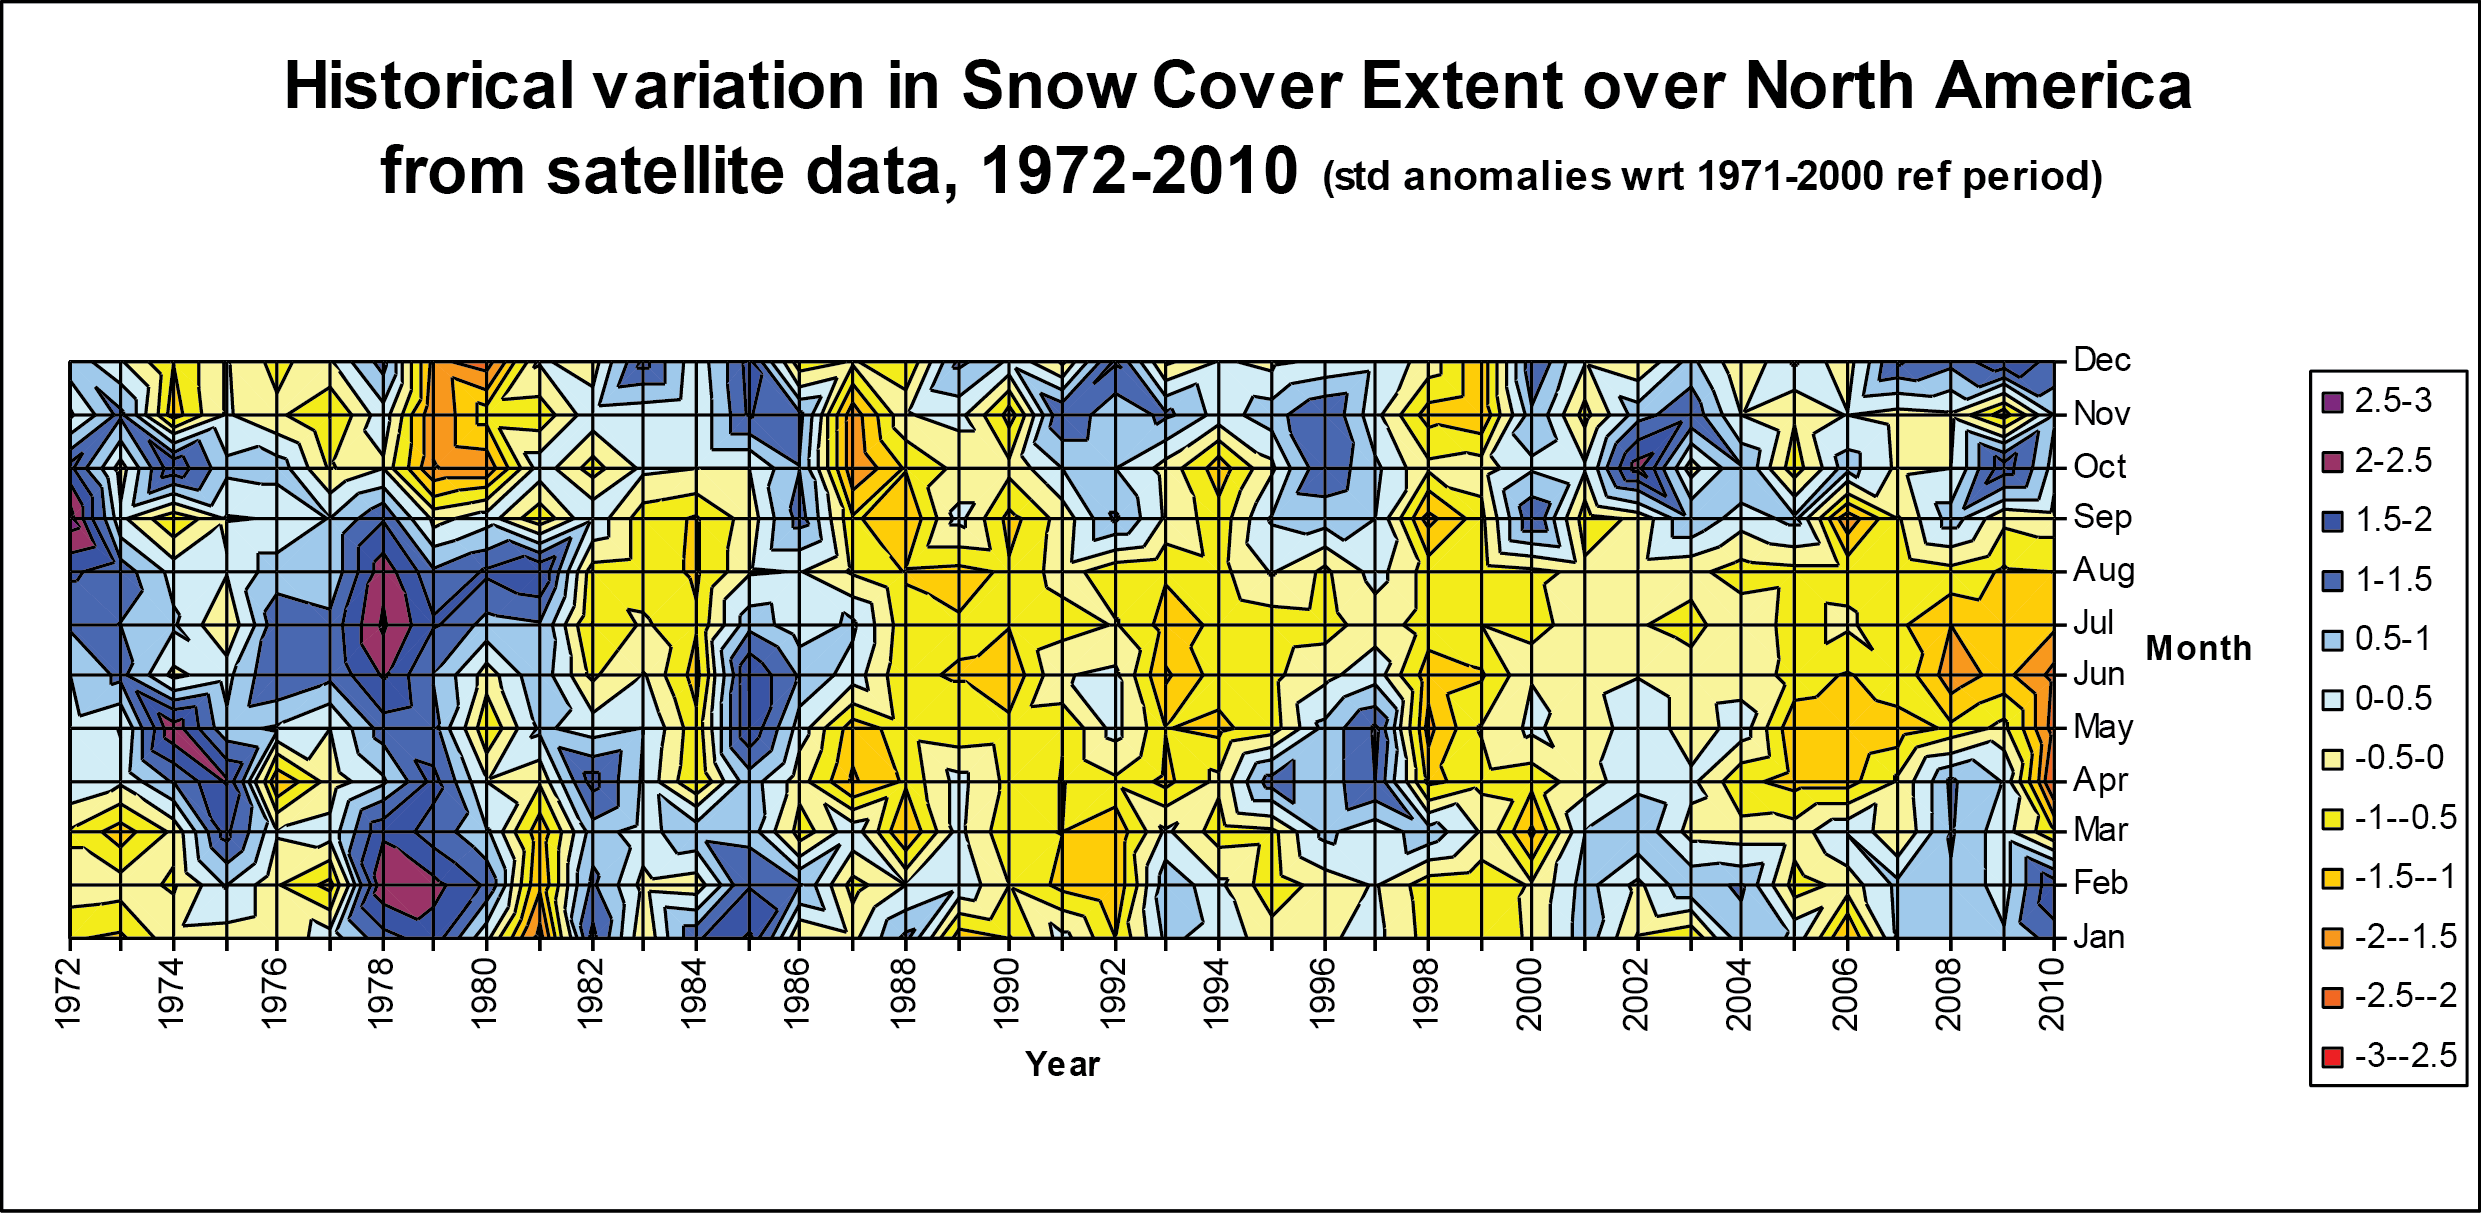 Satellite-derived contour plots of monthly snow cover extent over North America